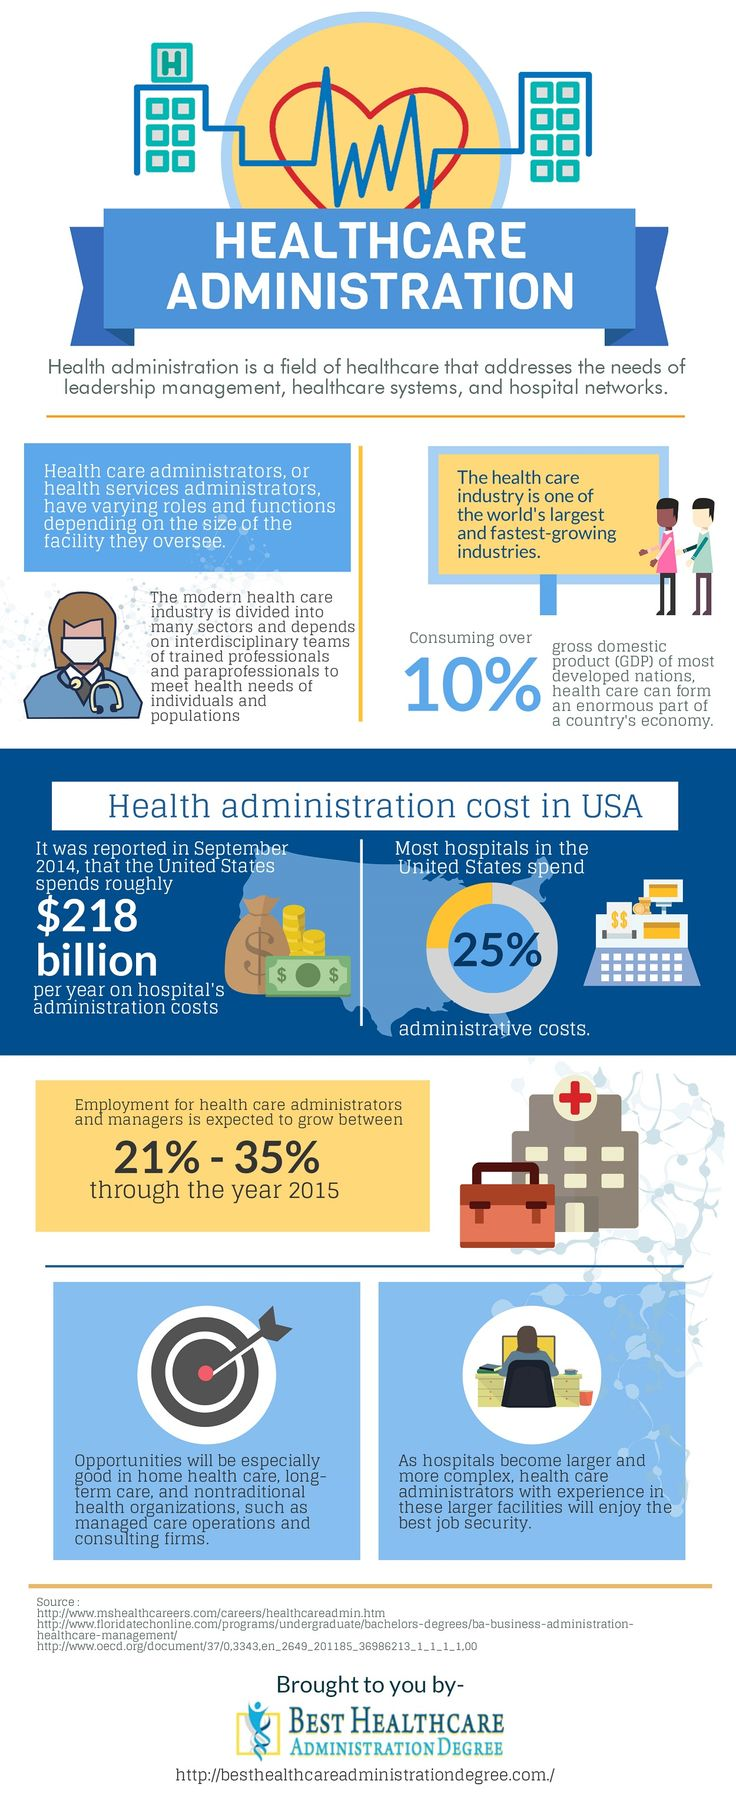 Health administration is a field of healthcare that addresses the needs of leadership management, healthcare systems, and hospital networks. If you want to know more about the leadership and general management of hospitals or hospital networks or healthcare systems, these places can help.